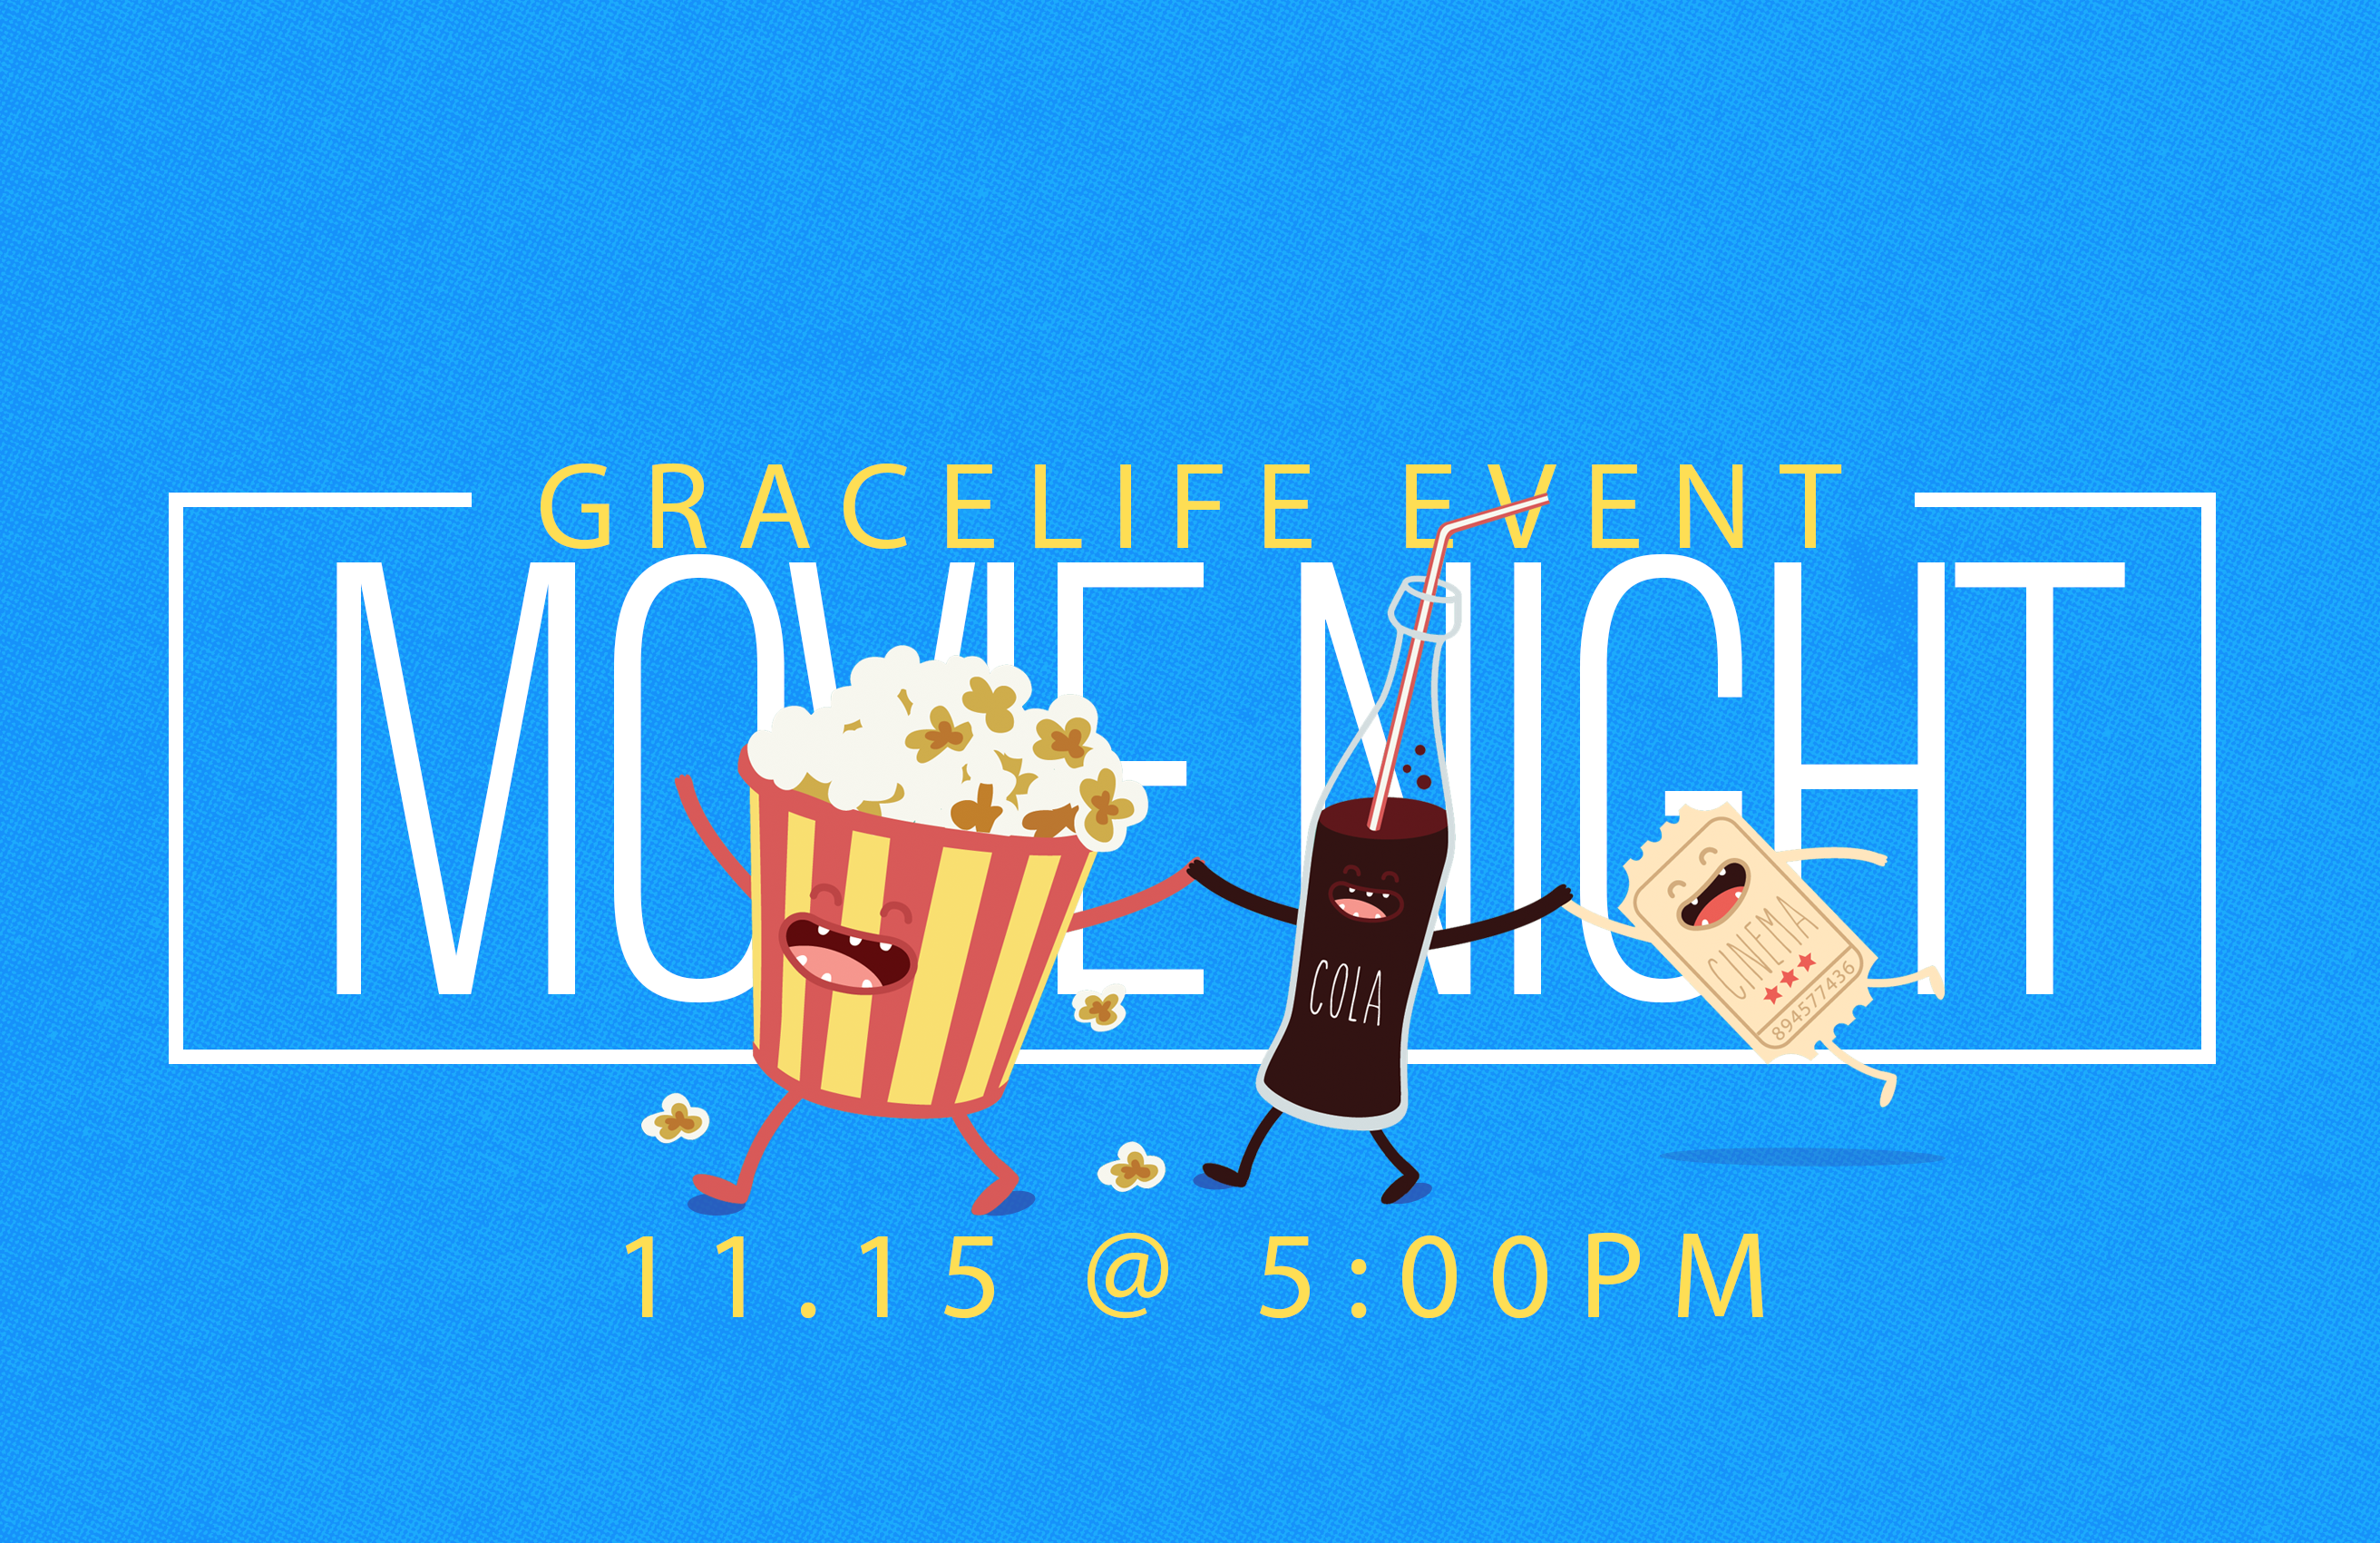 gracelife movie night event